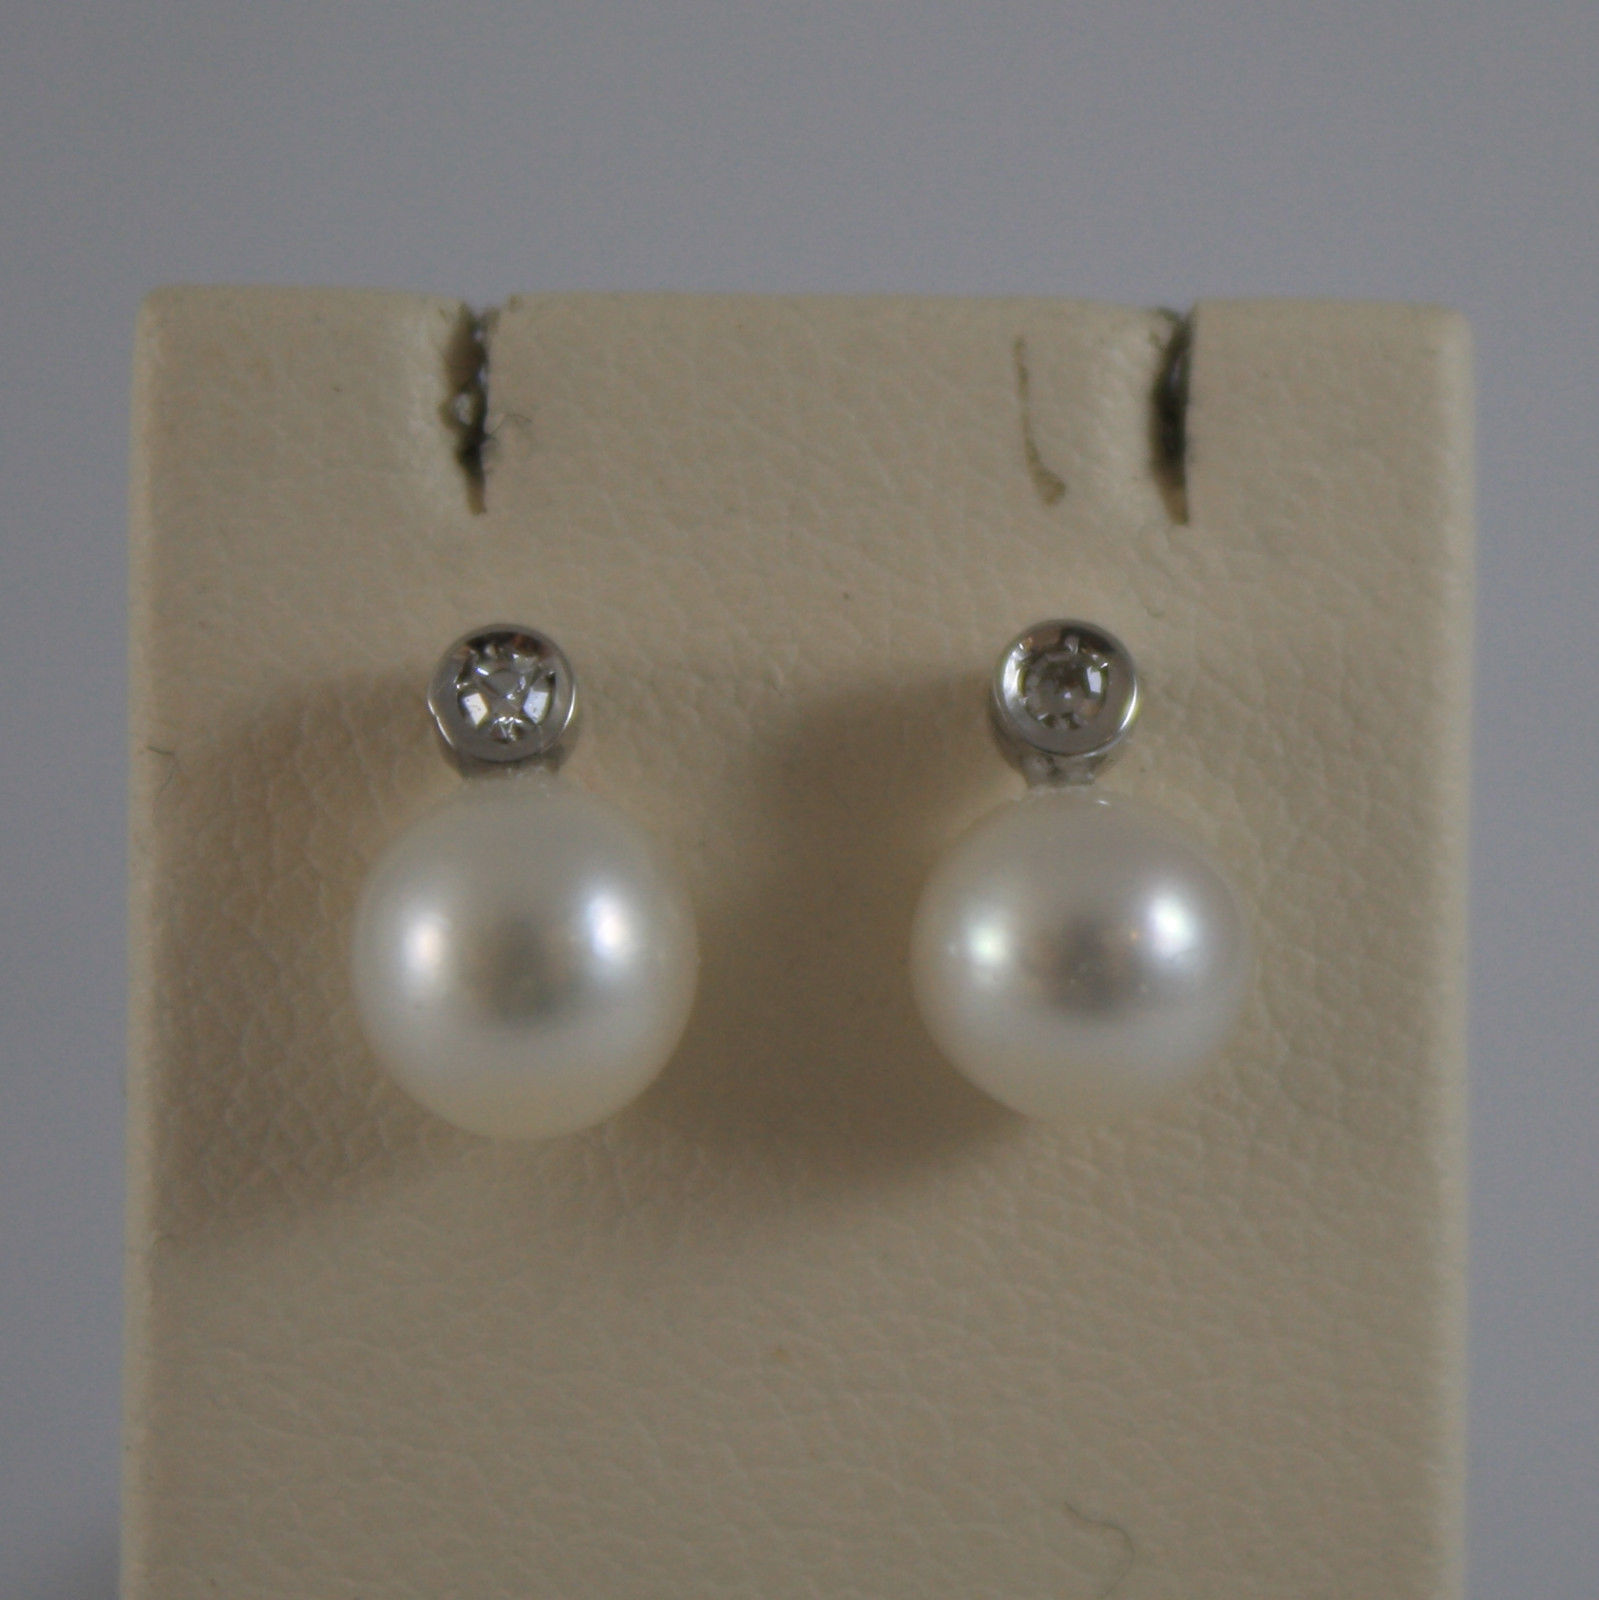 SOLID 18K WHITE GOLD EARRINGS, WITH WHITE PEARLS AND DIAMONDS 0,03 CT